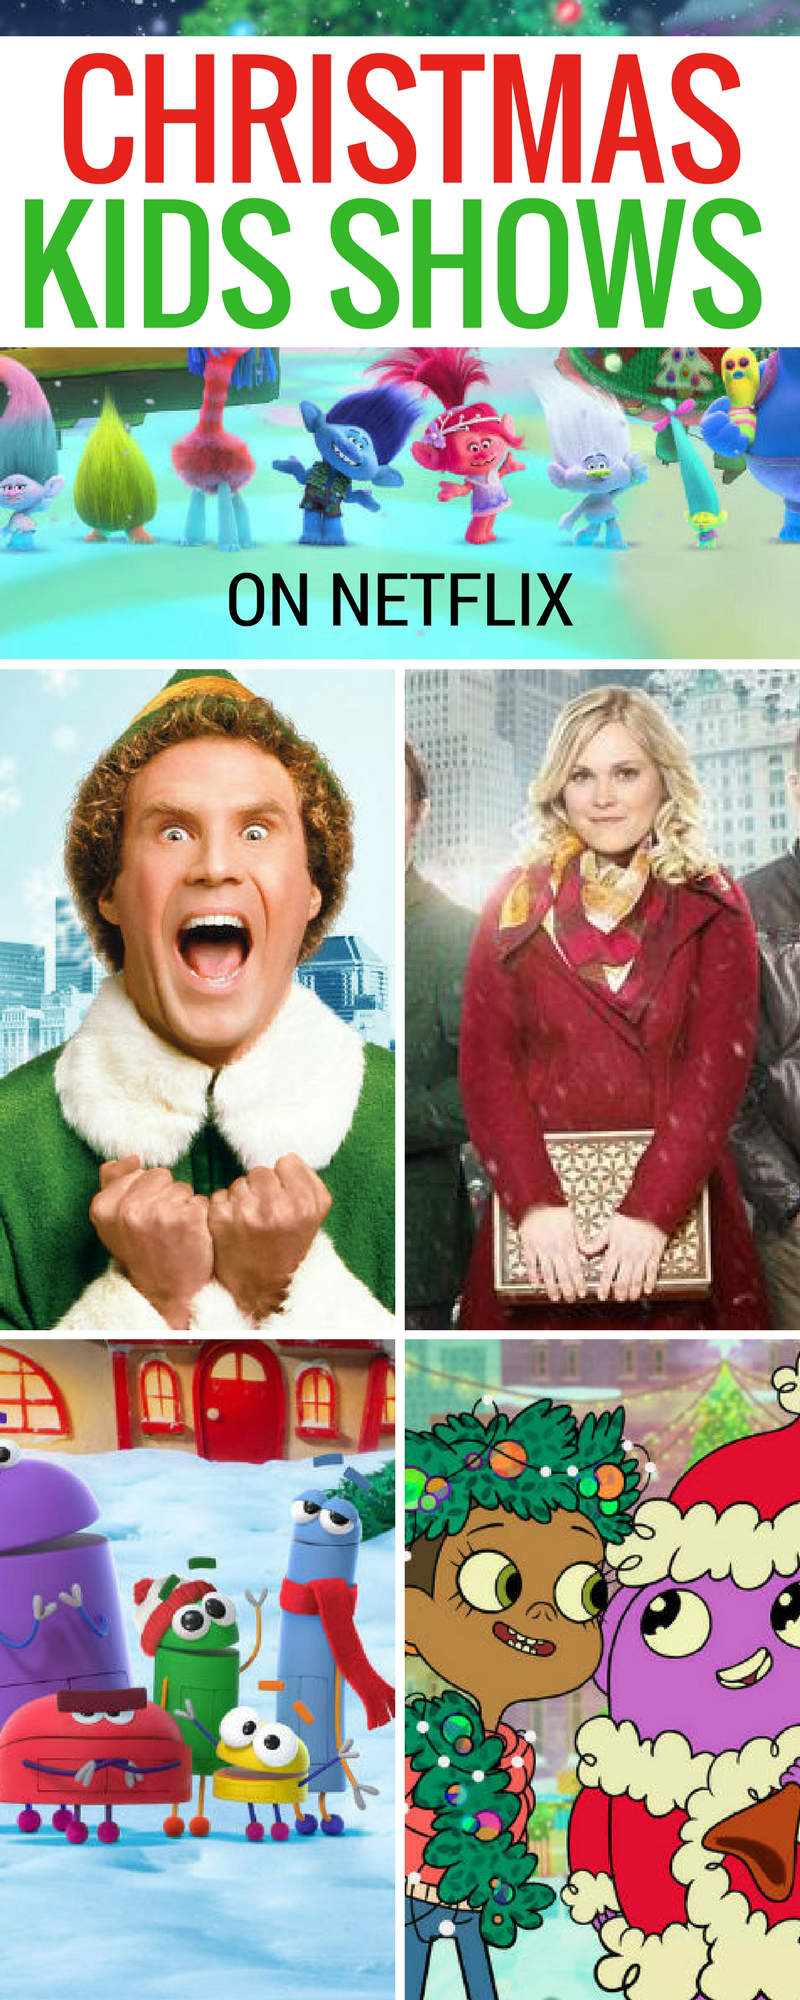 Christmas Show 2020 Christmas Shows On Netflix 2020 | Uwwvwb.howtocelebrate2020.info